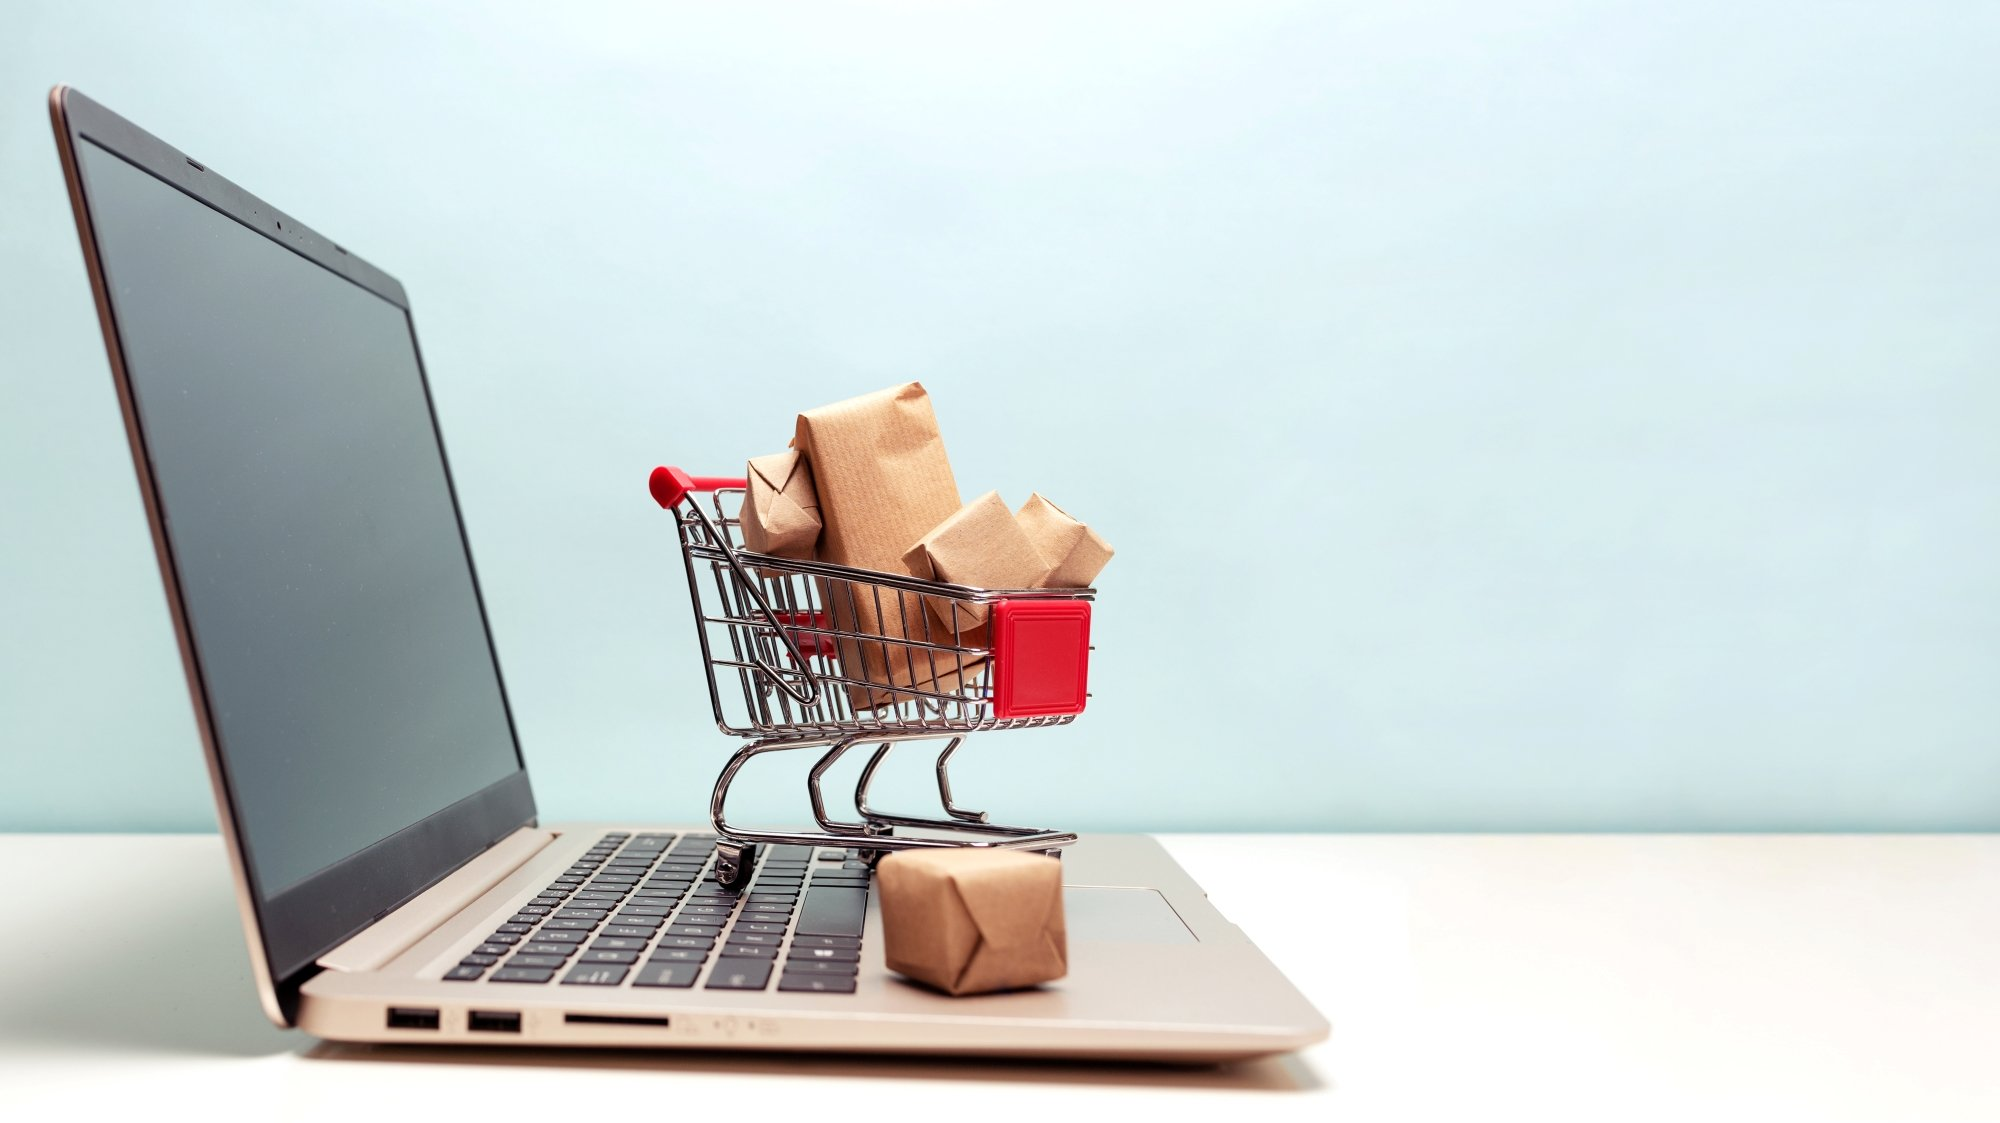 A shopping cart rests on top of a laptop's keyboard as a concept for e-commerce